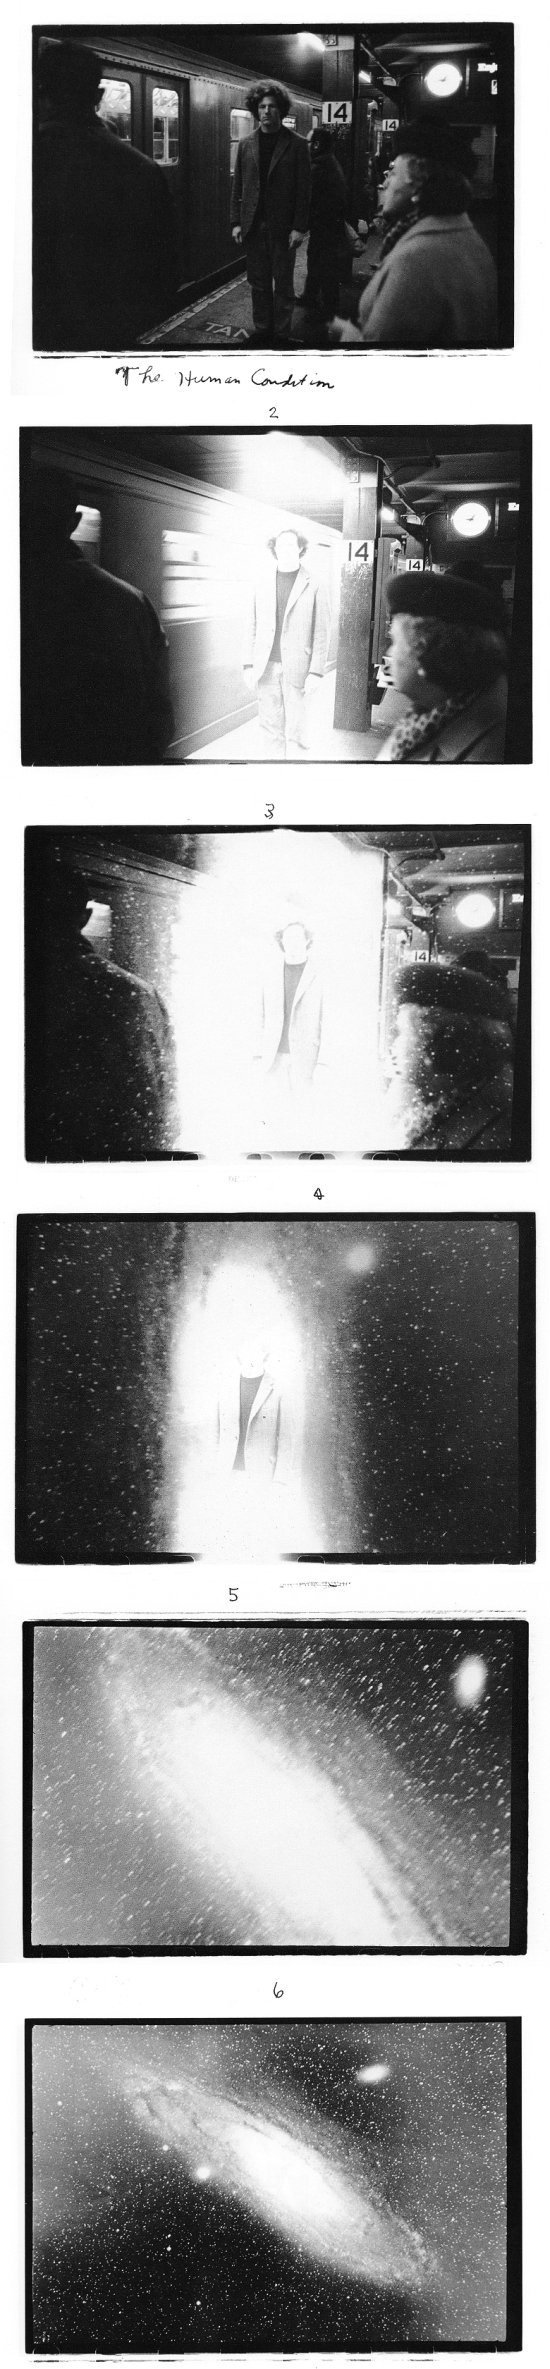 The Human condition by Duane Michals